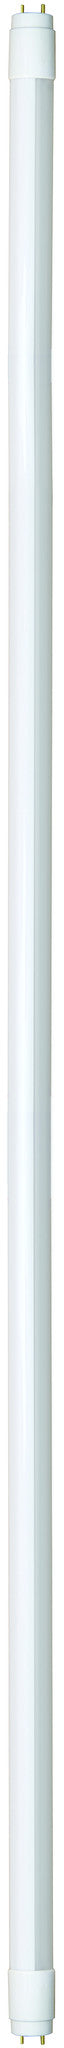 167371 - EcoWatts - Tube LED T8 G13 120cm 20W 4000K 1800Lm